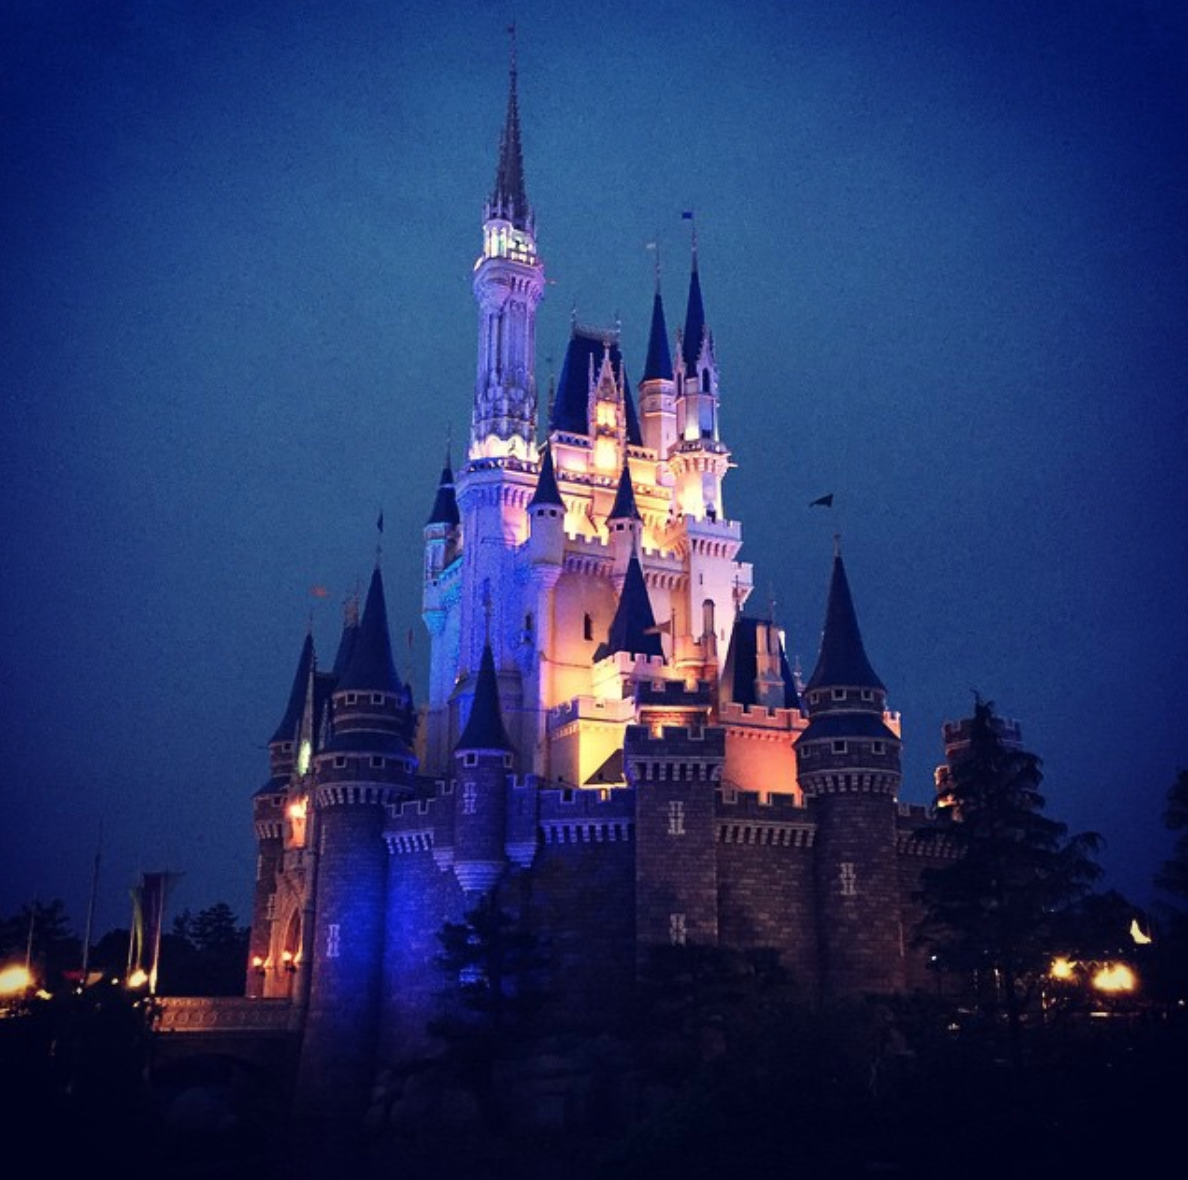 A photo of the Enchanted Castle at Tokyo Disneyland